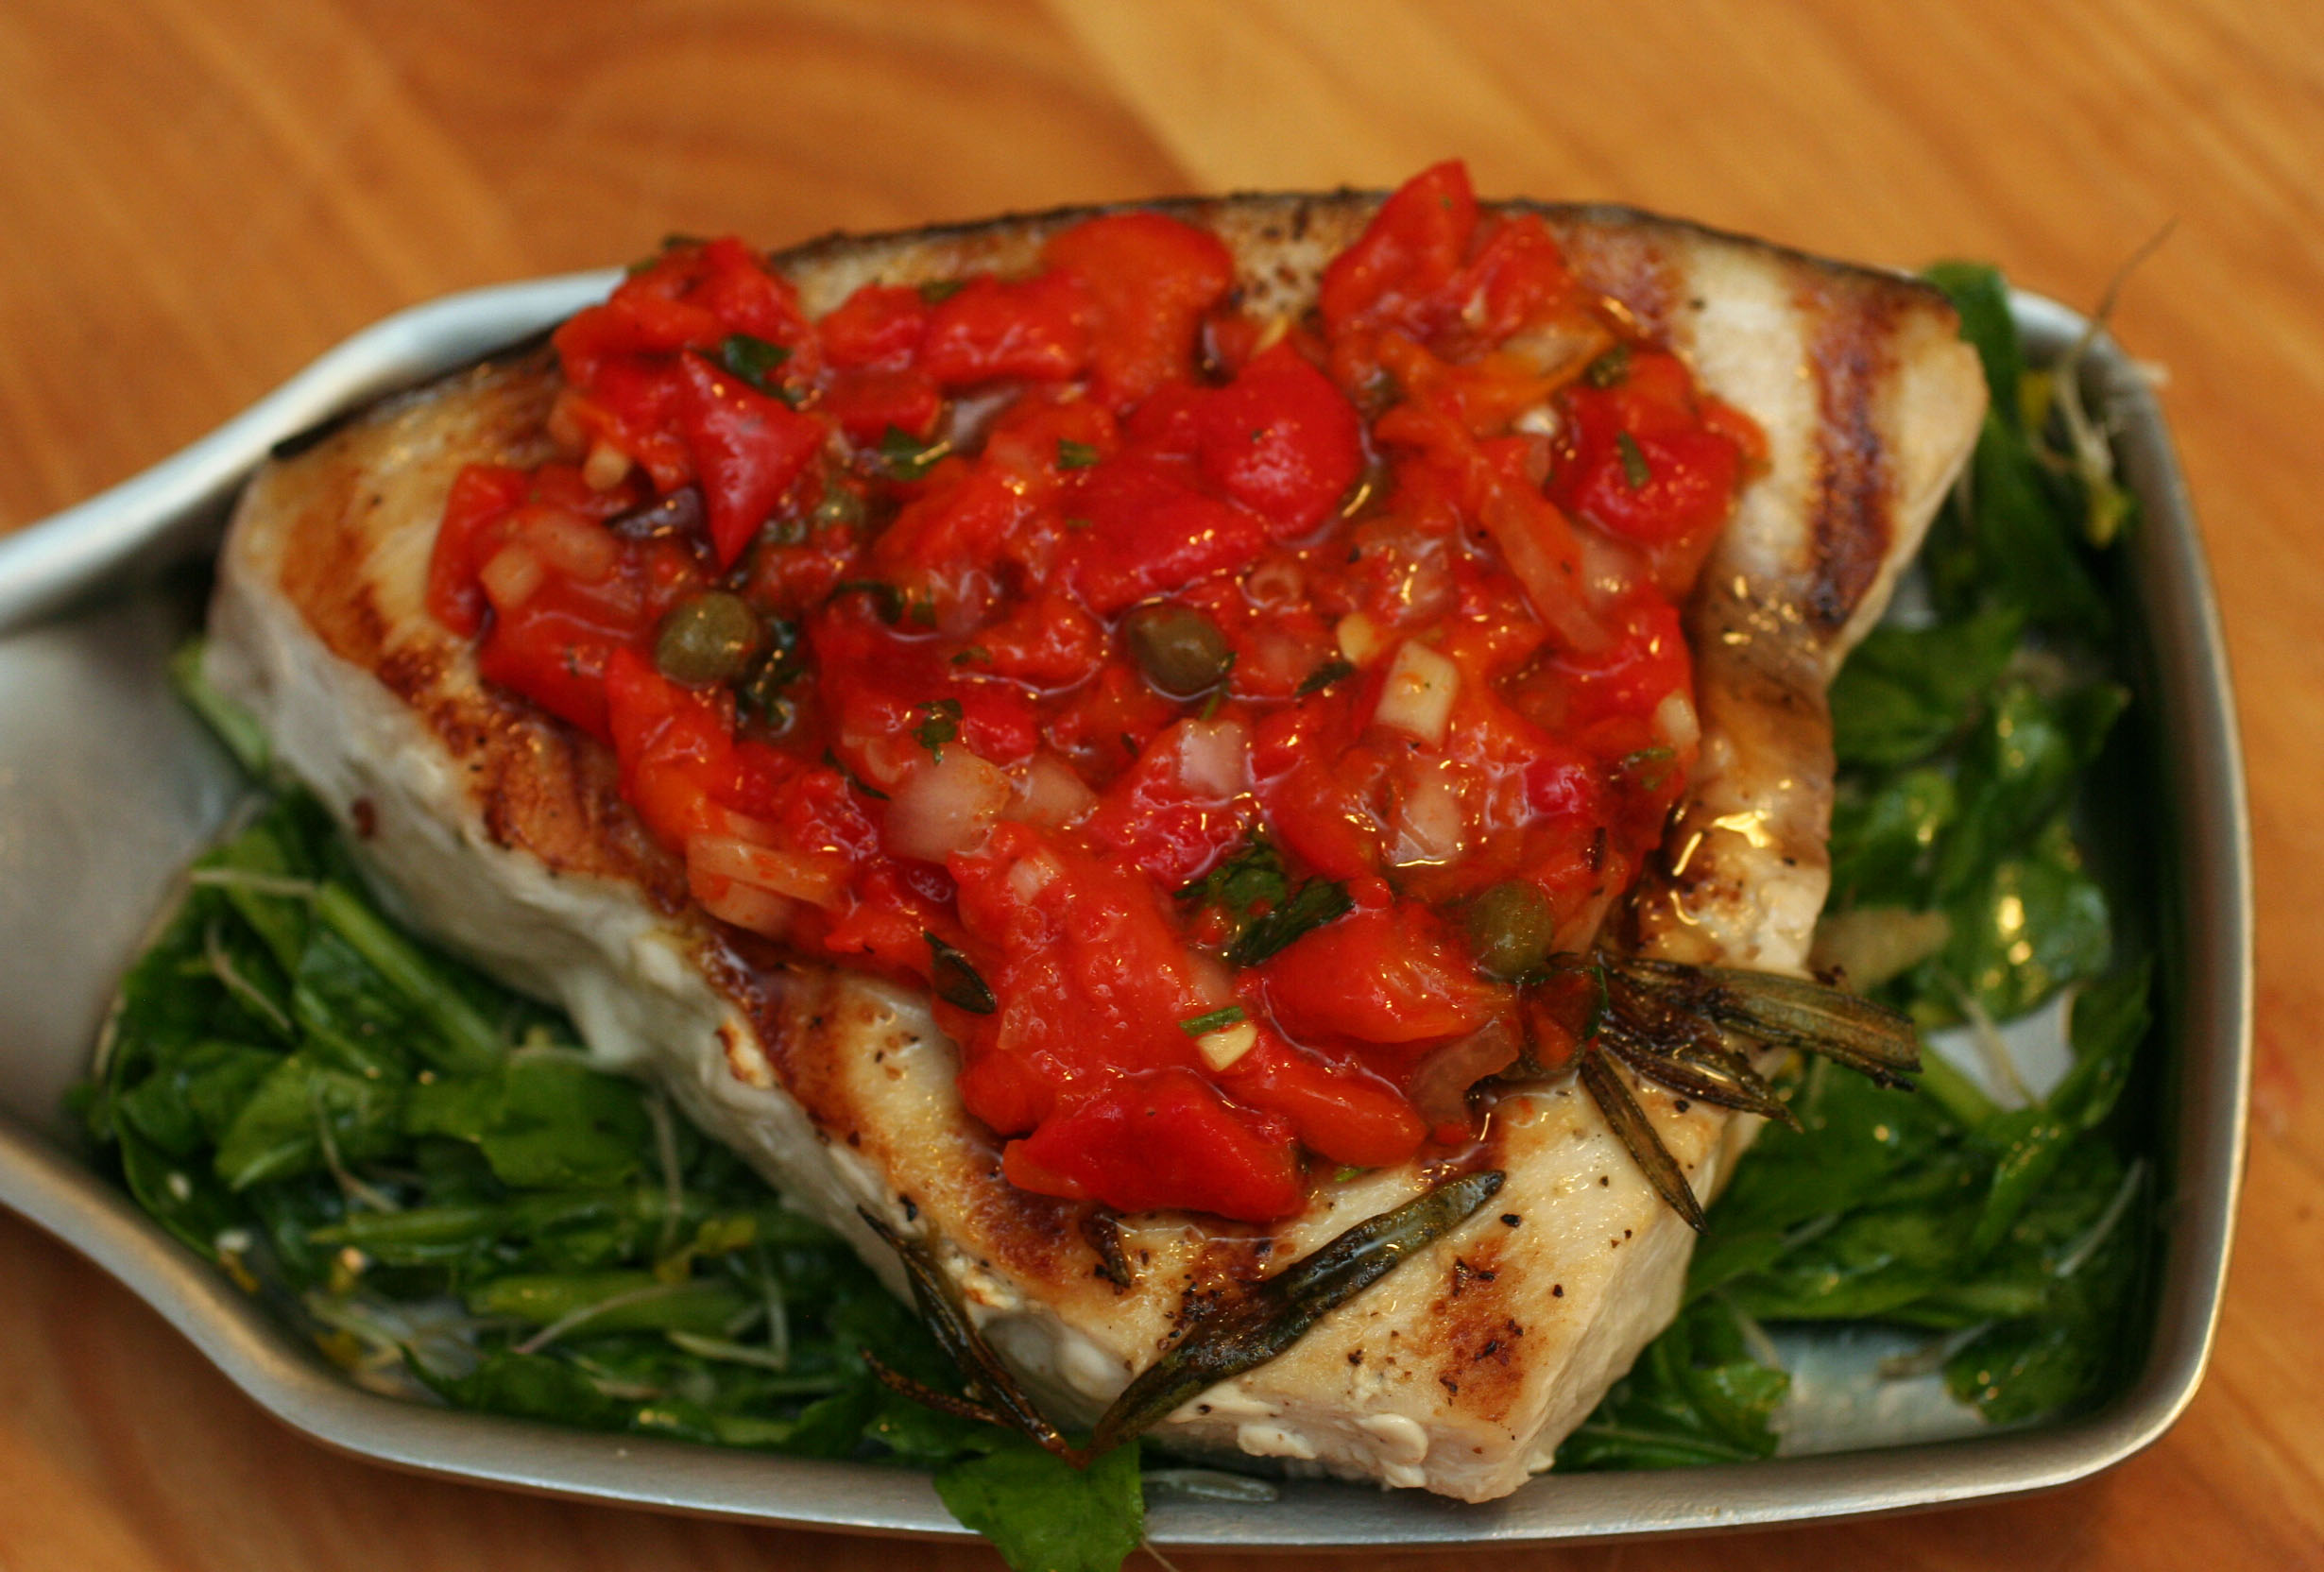 Mind Quick Swordfish Roasted Red Pepper Caper Relish Snacko Backo Baked Swordfish Recipes Epicurious Breaded Baked Swordfish Recipes nice food Baked Swordfish Recipes